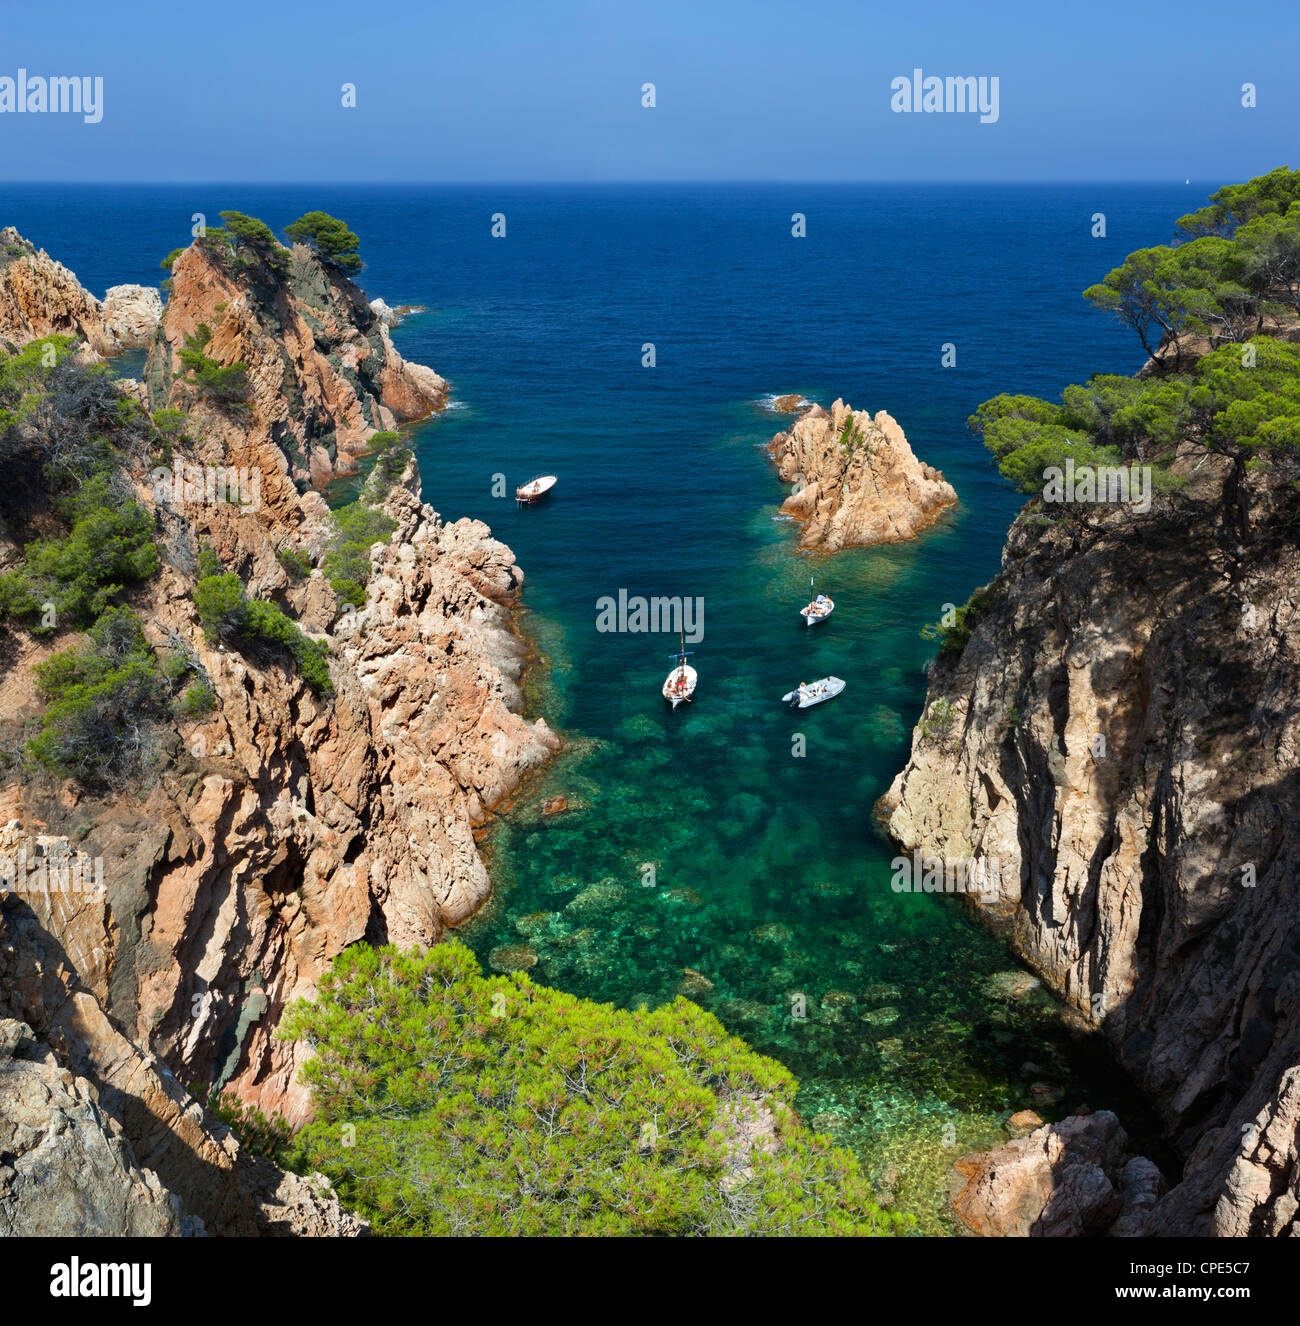 Secluded cove, Aiguaxelida, near Palafrugell, Costa Brava, Catalonia, Spain, Mediterranean, Europe - Stock Image